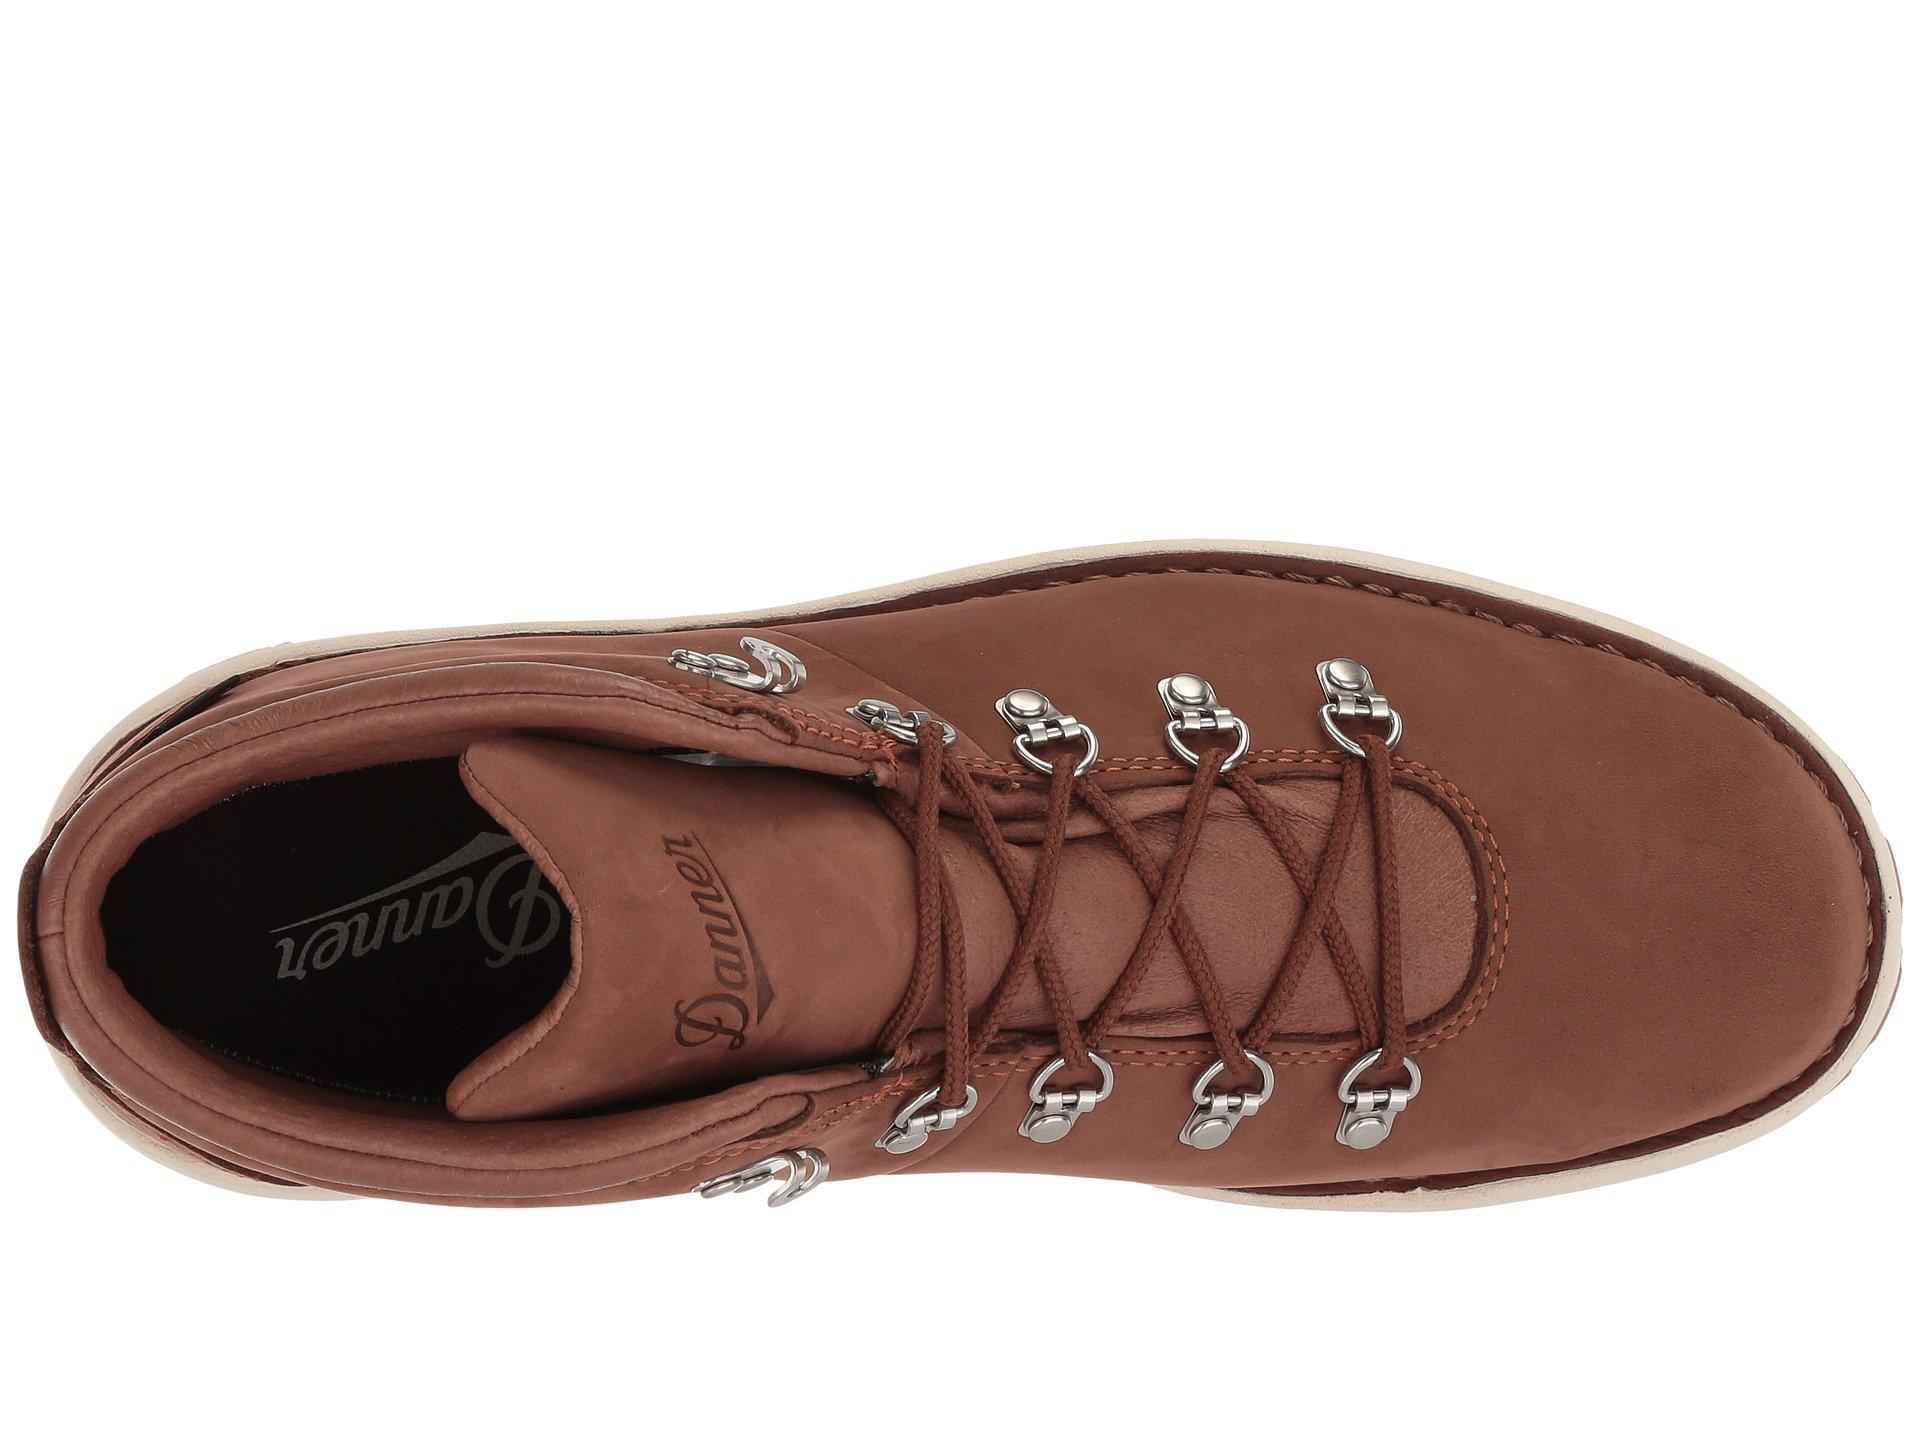 66e3fdffe0b0e7 Danner - Brown Tramline 917 (black) Men s Shoes for Men - Lyst. View  fullscreen